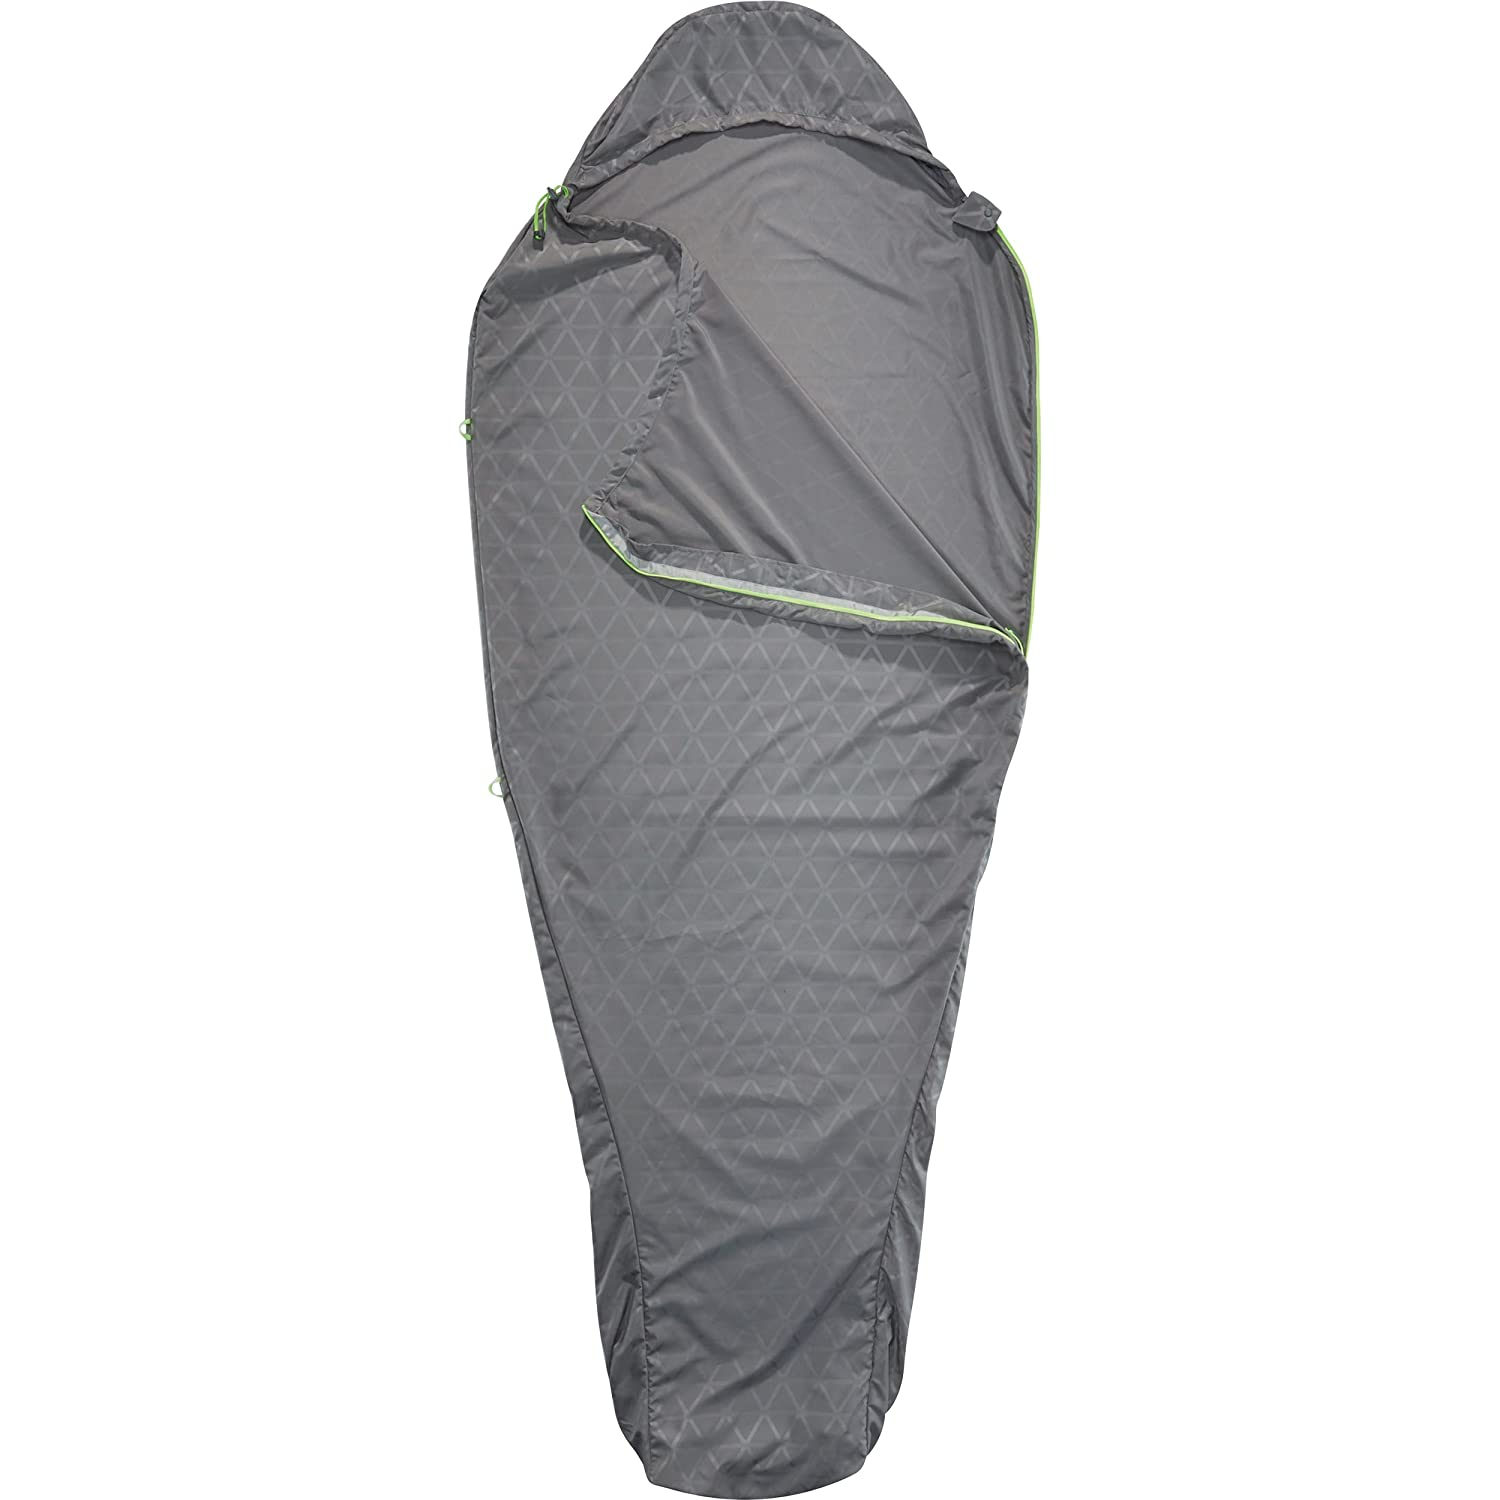 Therm-a-Rest Sleeping Bag Liner and Travel Sleep Sack, Long Cascade Designs Inc. 10283